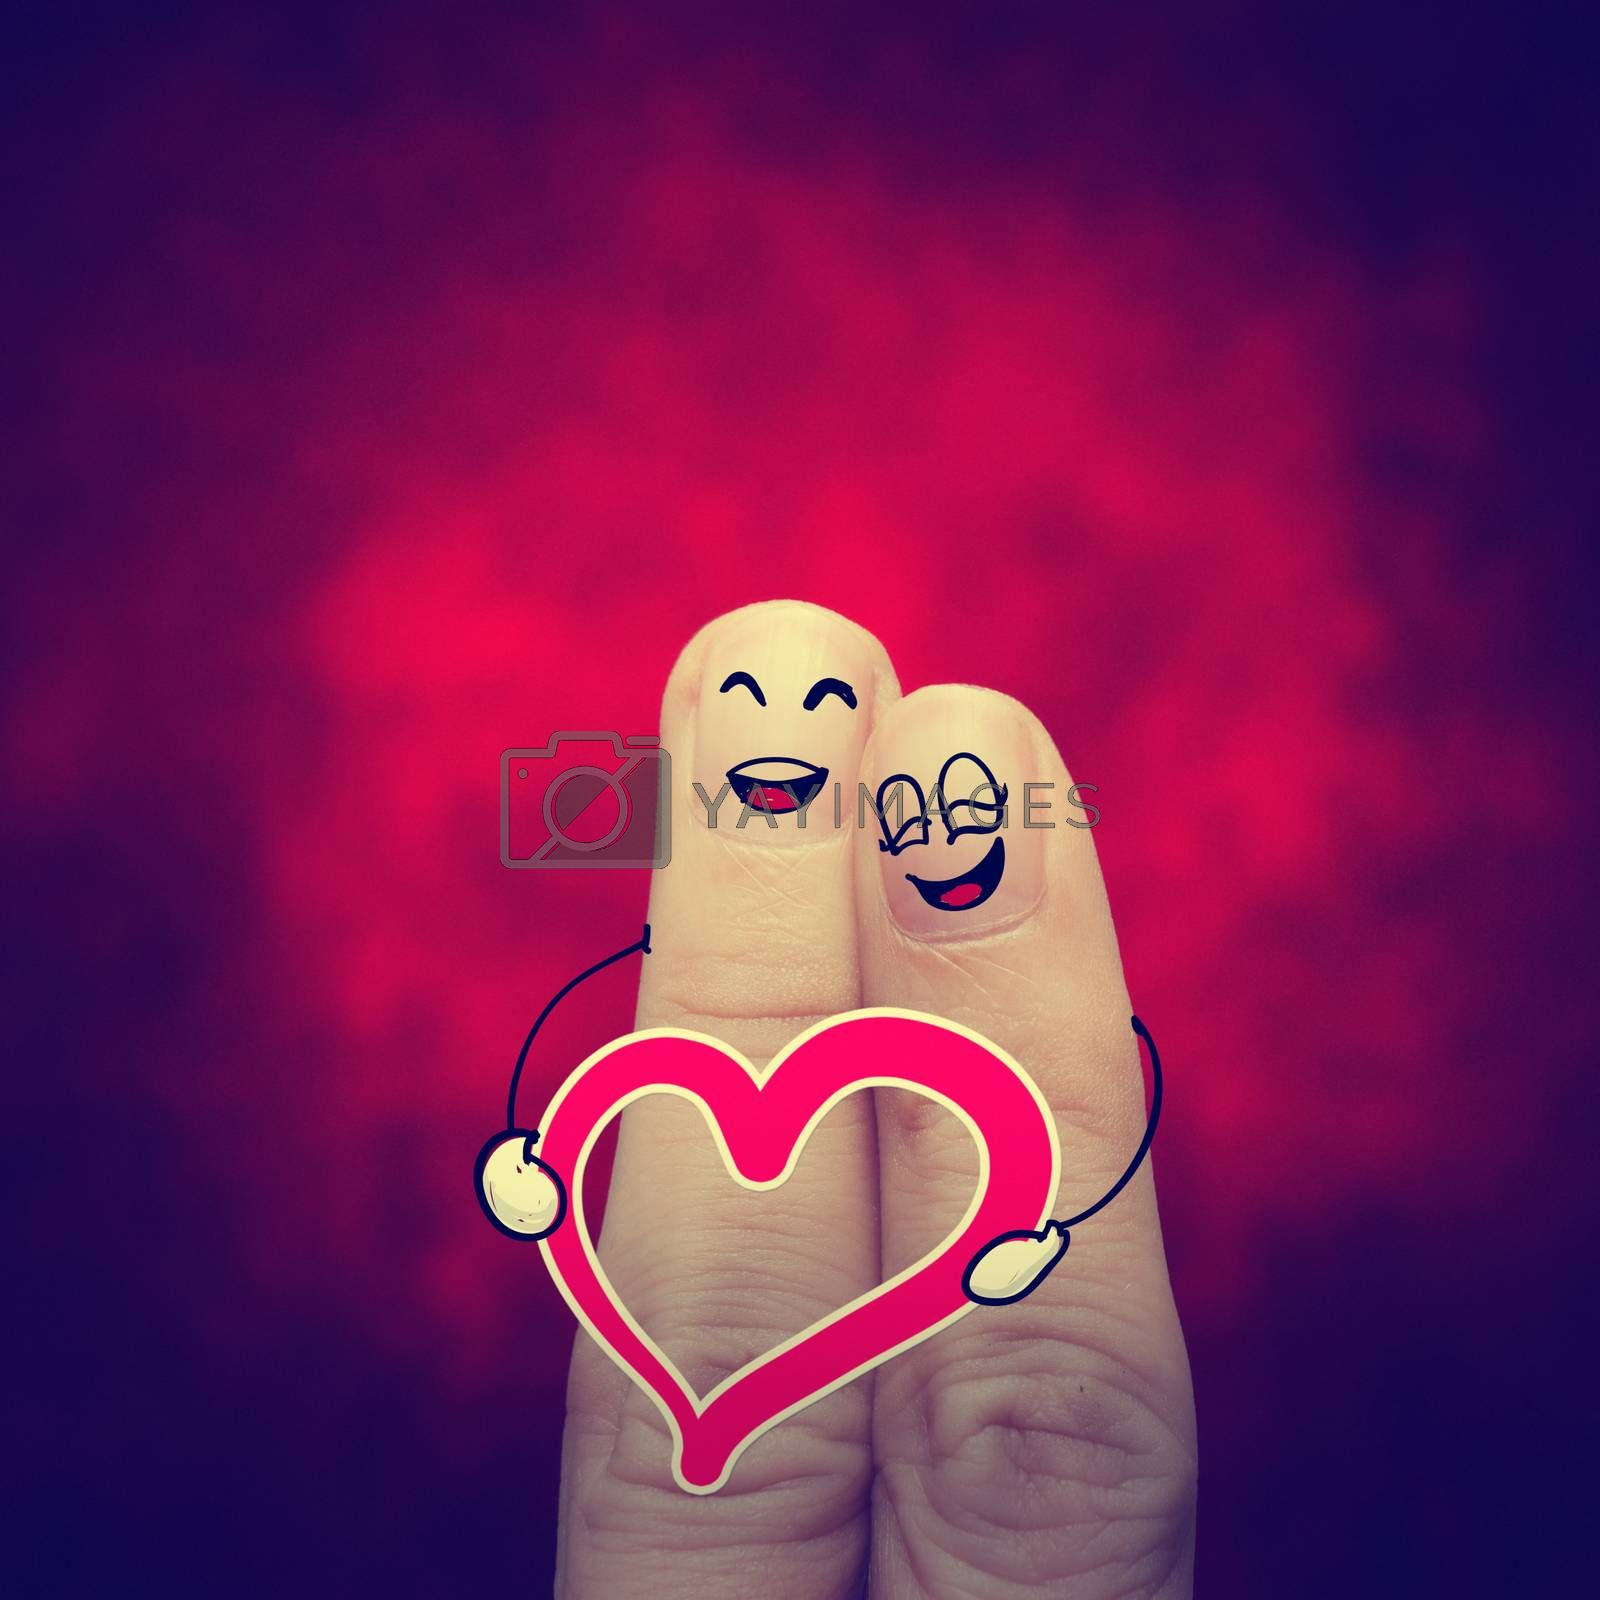 the happy vintage  finger couple in love with painted smiley classic